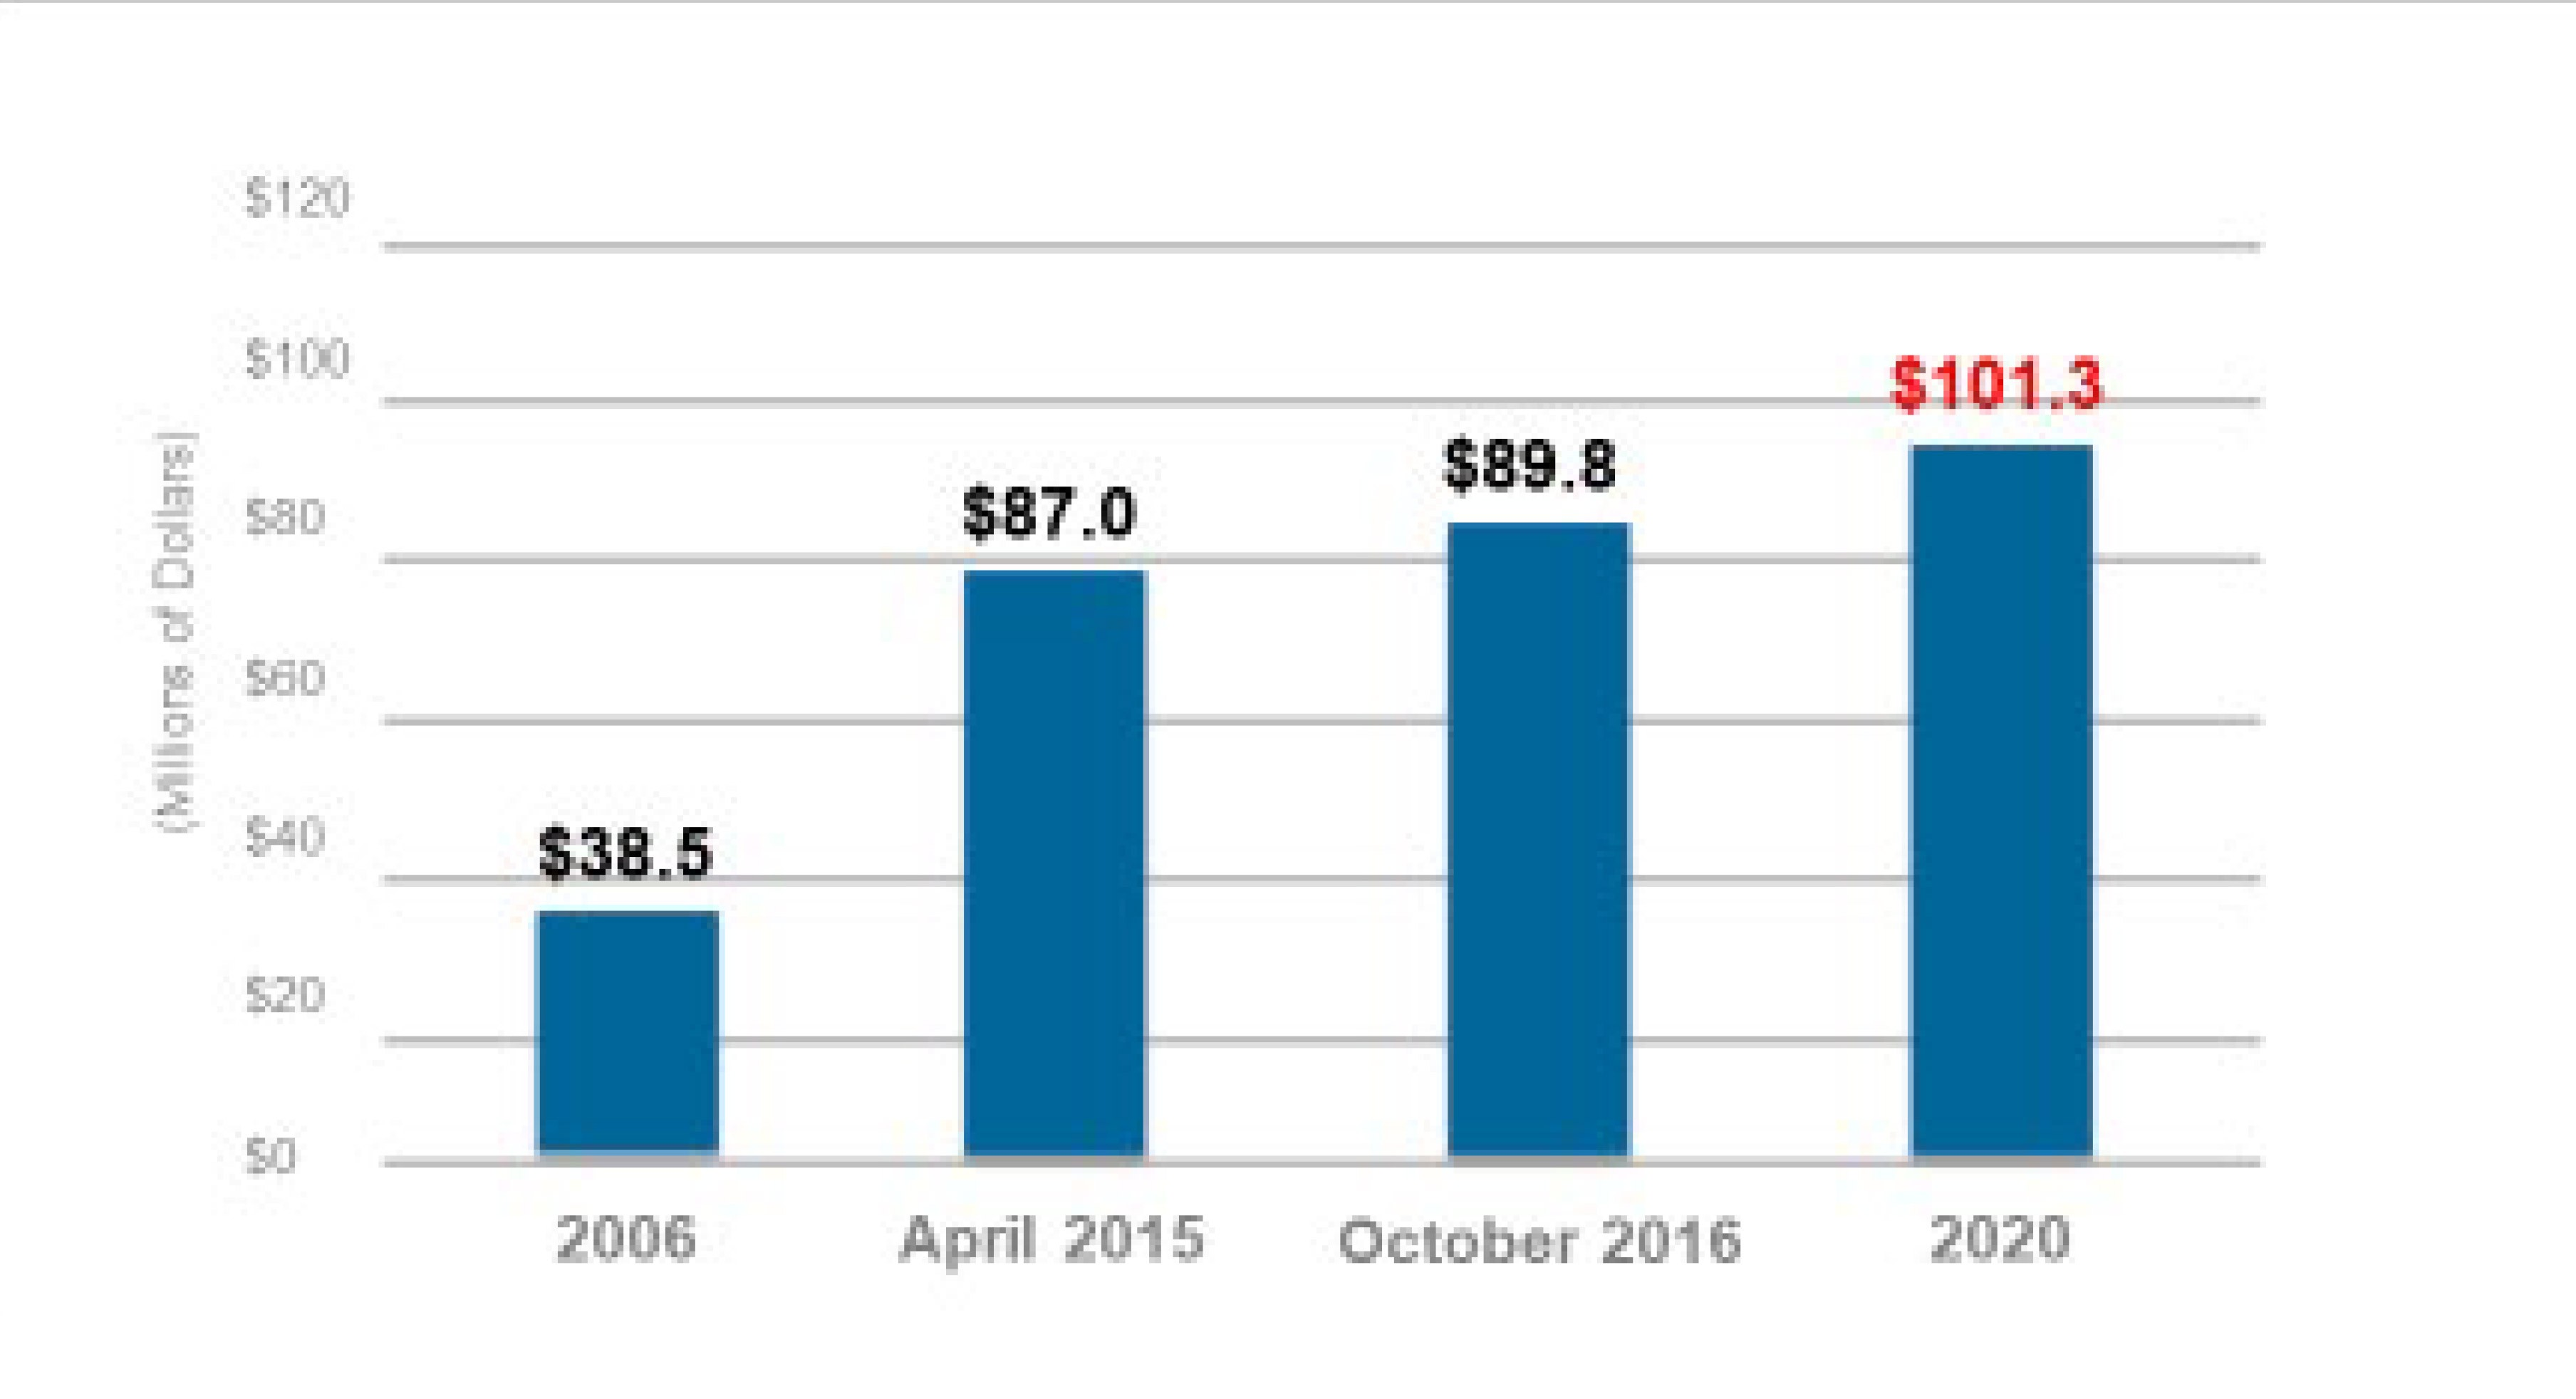 Chart showing deferred maintenance and campus improvements: 2006 $38.5 million; 2015 $87 million; 2016 $89.8 million; 2020 $101.3 million.